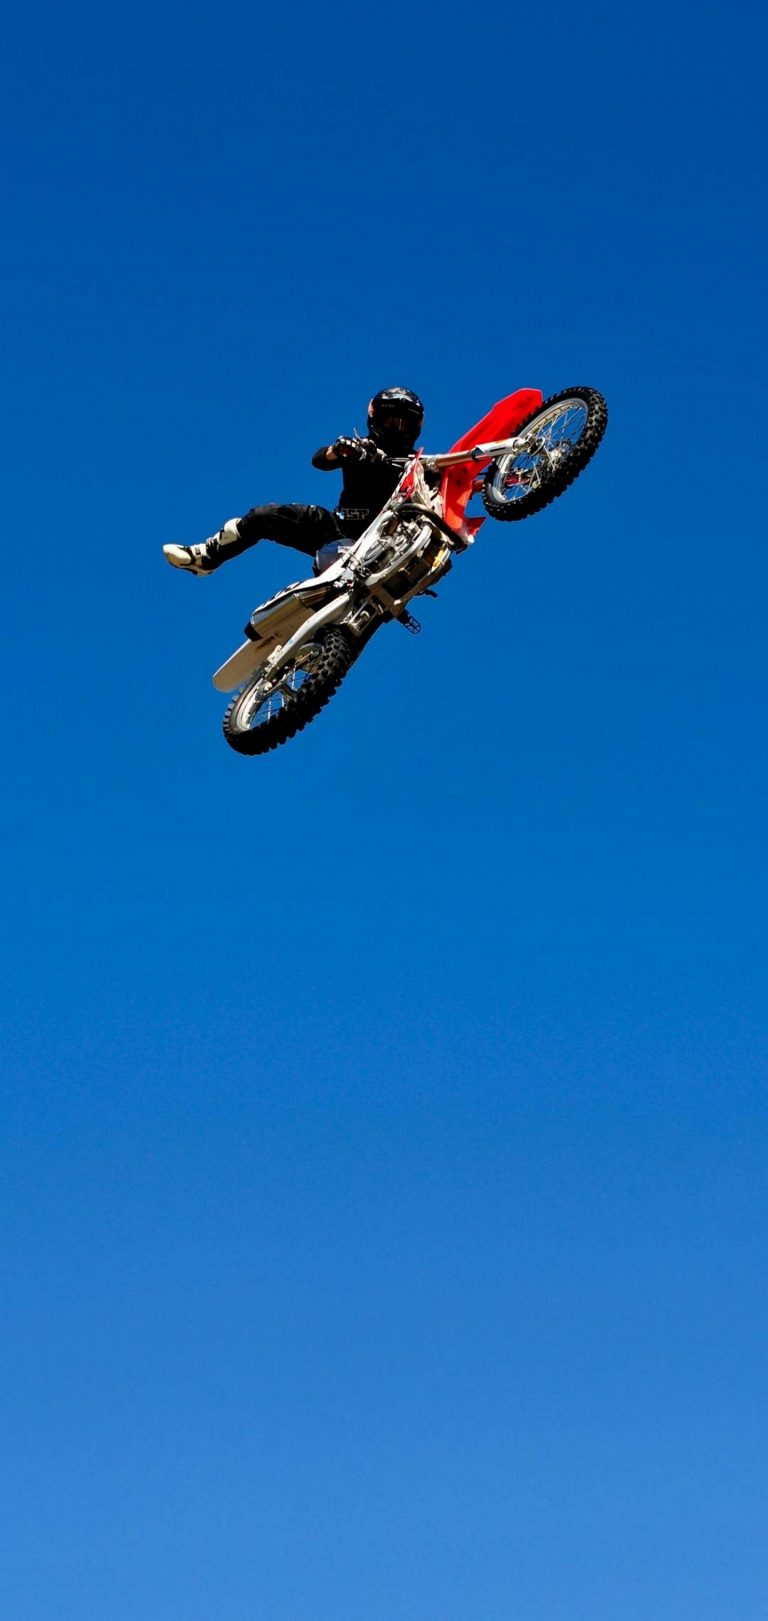 Bike Jump Blue Sky Wallpaper 1440x3040 768x1621